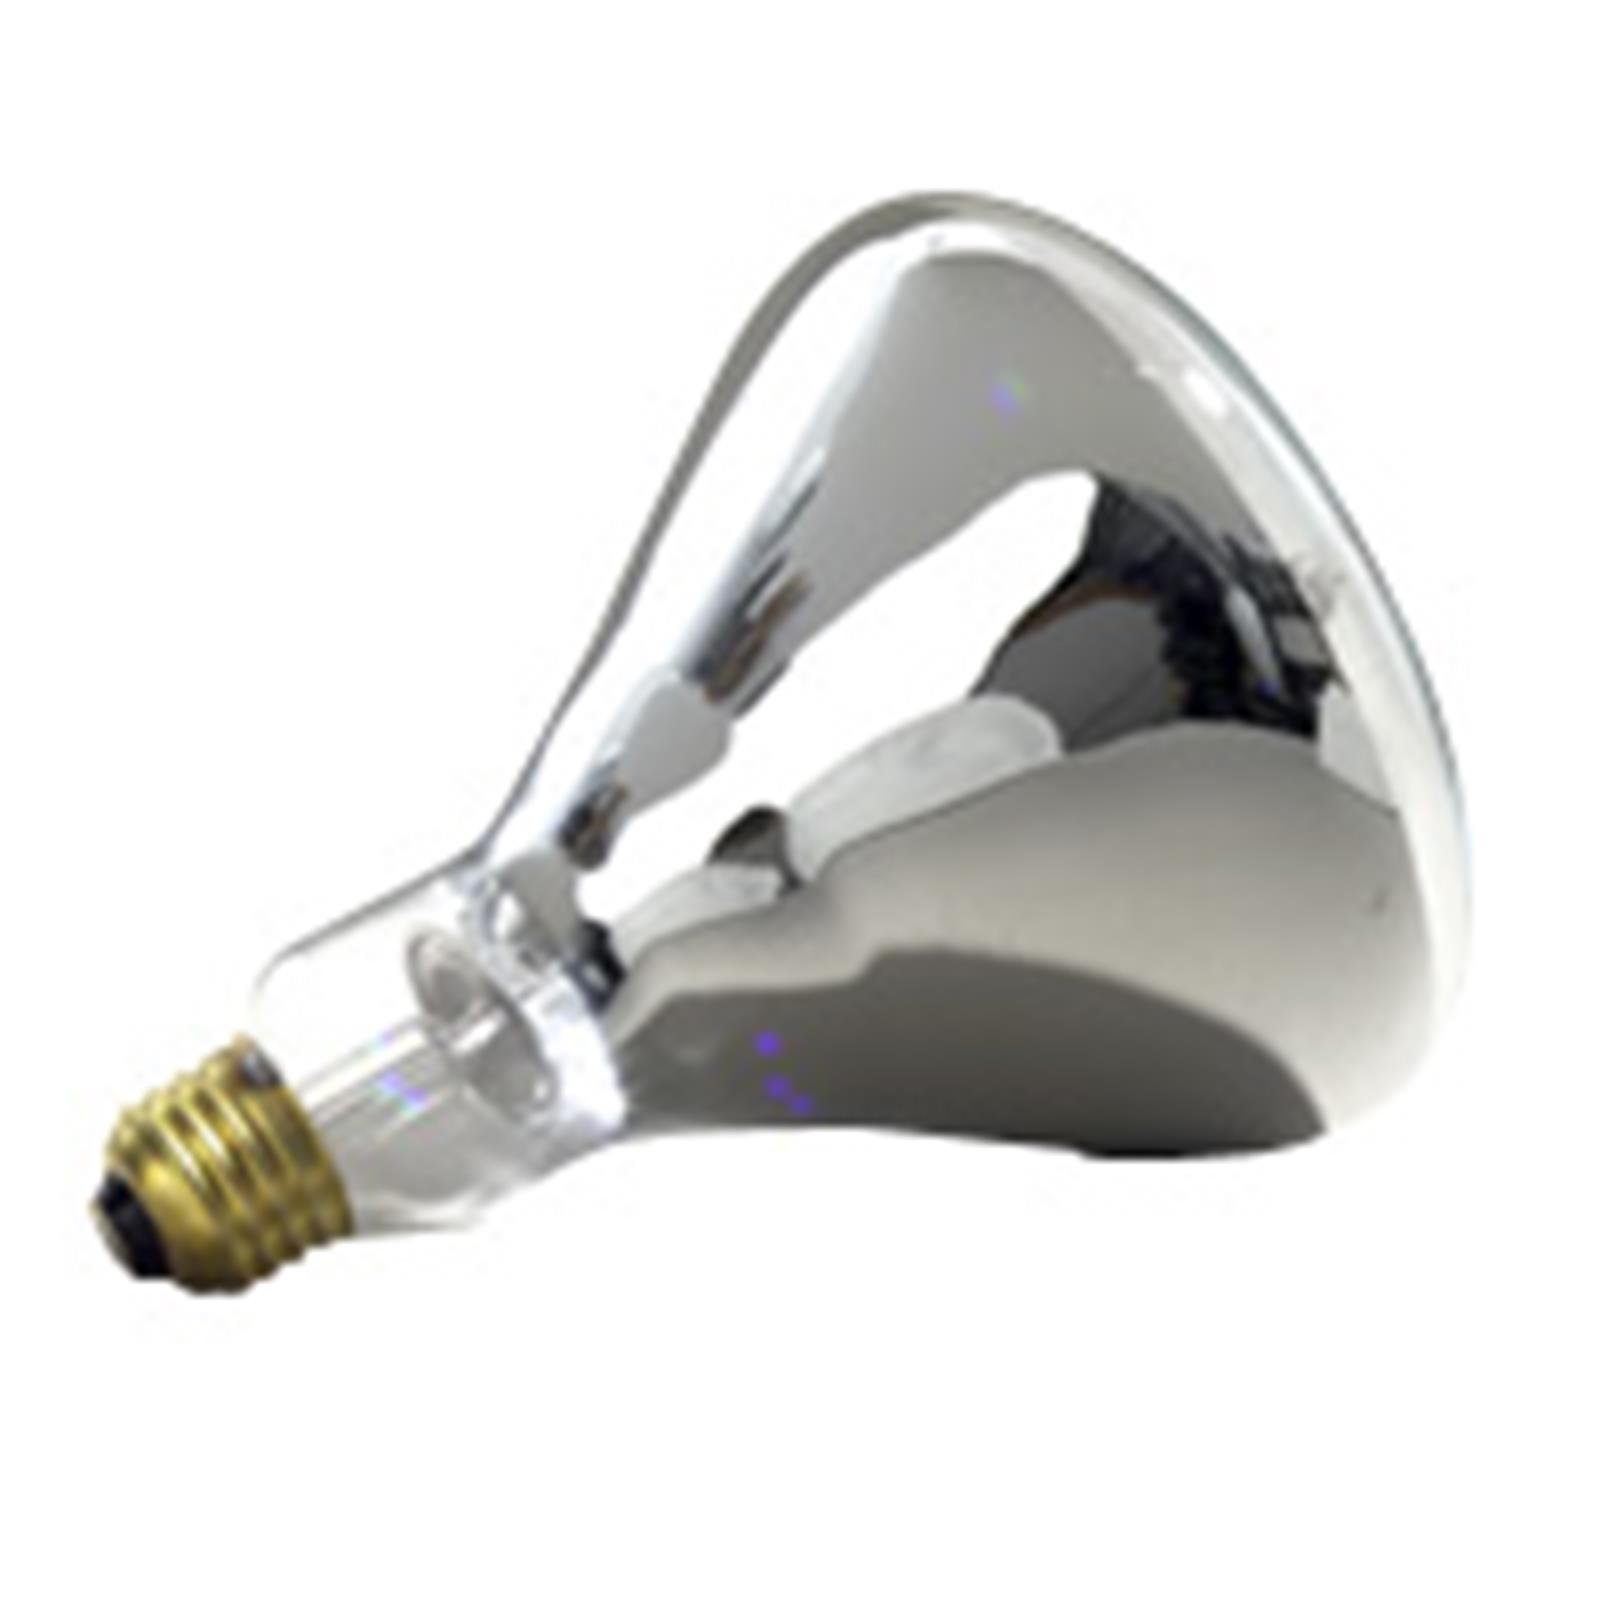 6 Qty. Halco 375W R40 CL 120V HEAT 5M Prism R40CL375 375w 120v Incandescent Clear Infrared Prism Lamp Bulb